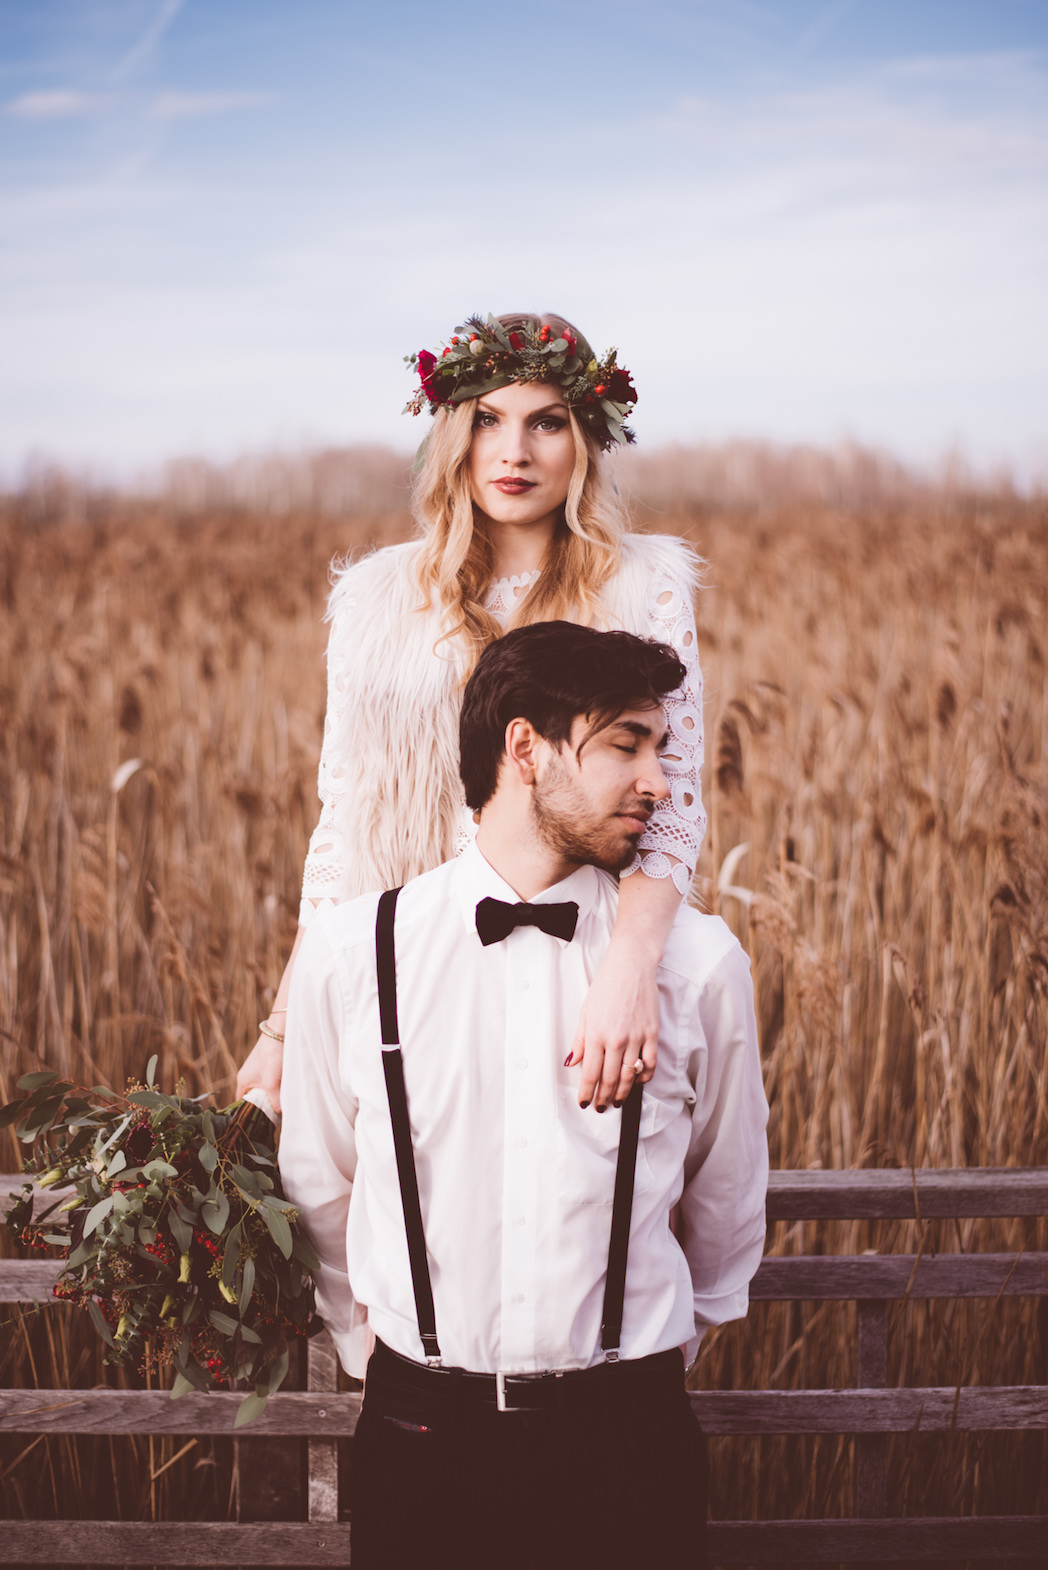 Indie Cool Winter Session at Federsee | Ana Fernweh | Destination Wedding Photographer